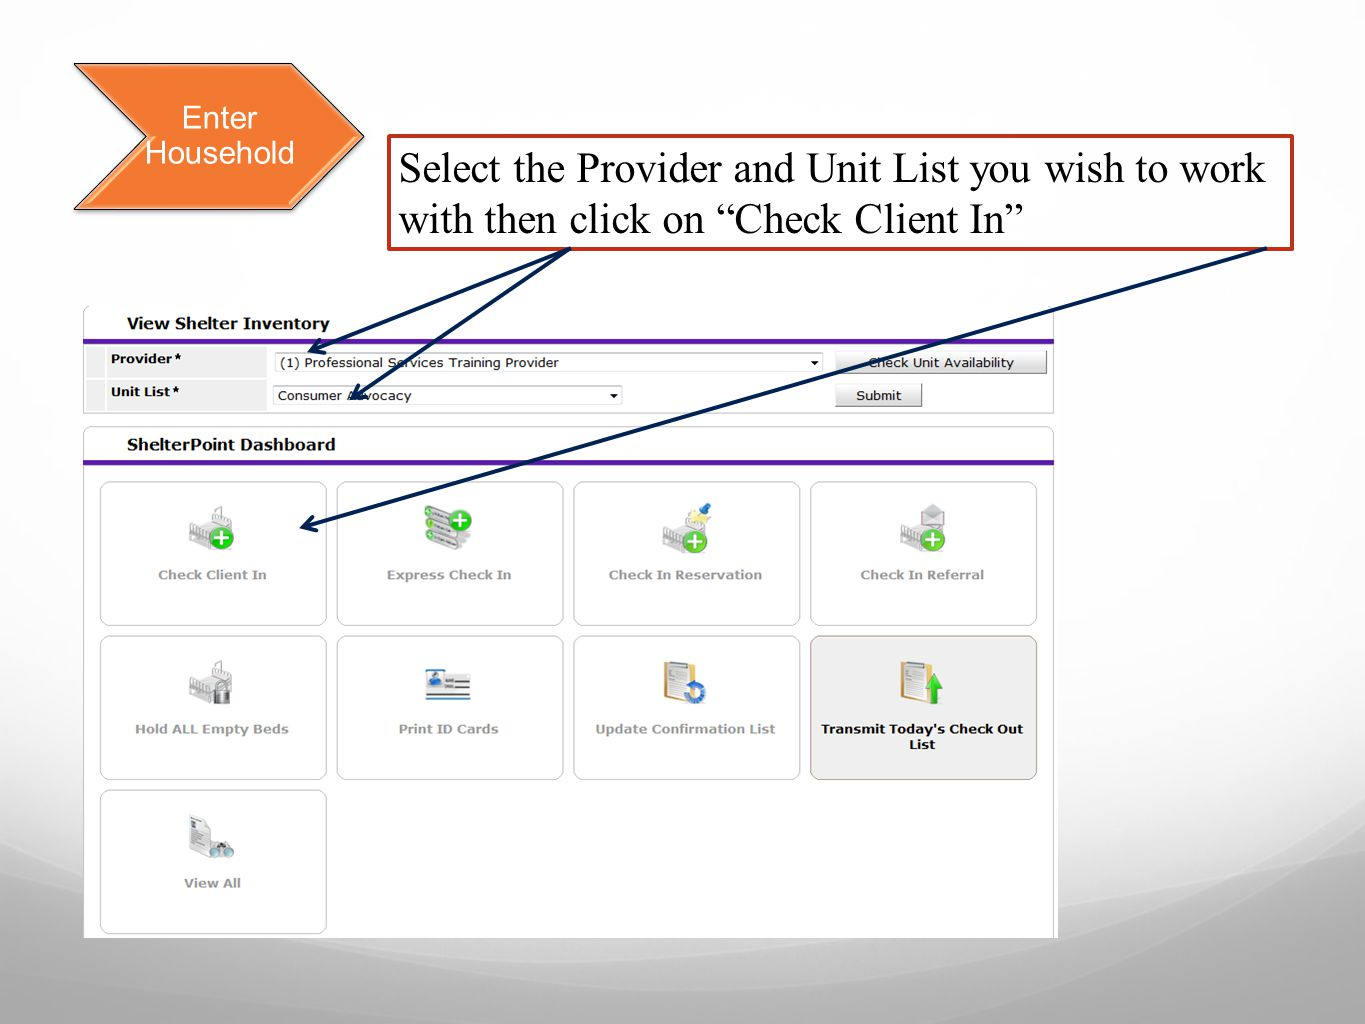 Enter Household Select the Provider and Unit List you wish to work with then click on Check Client In